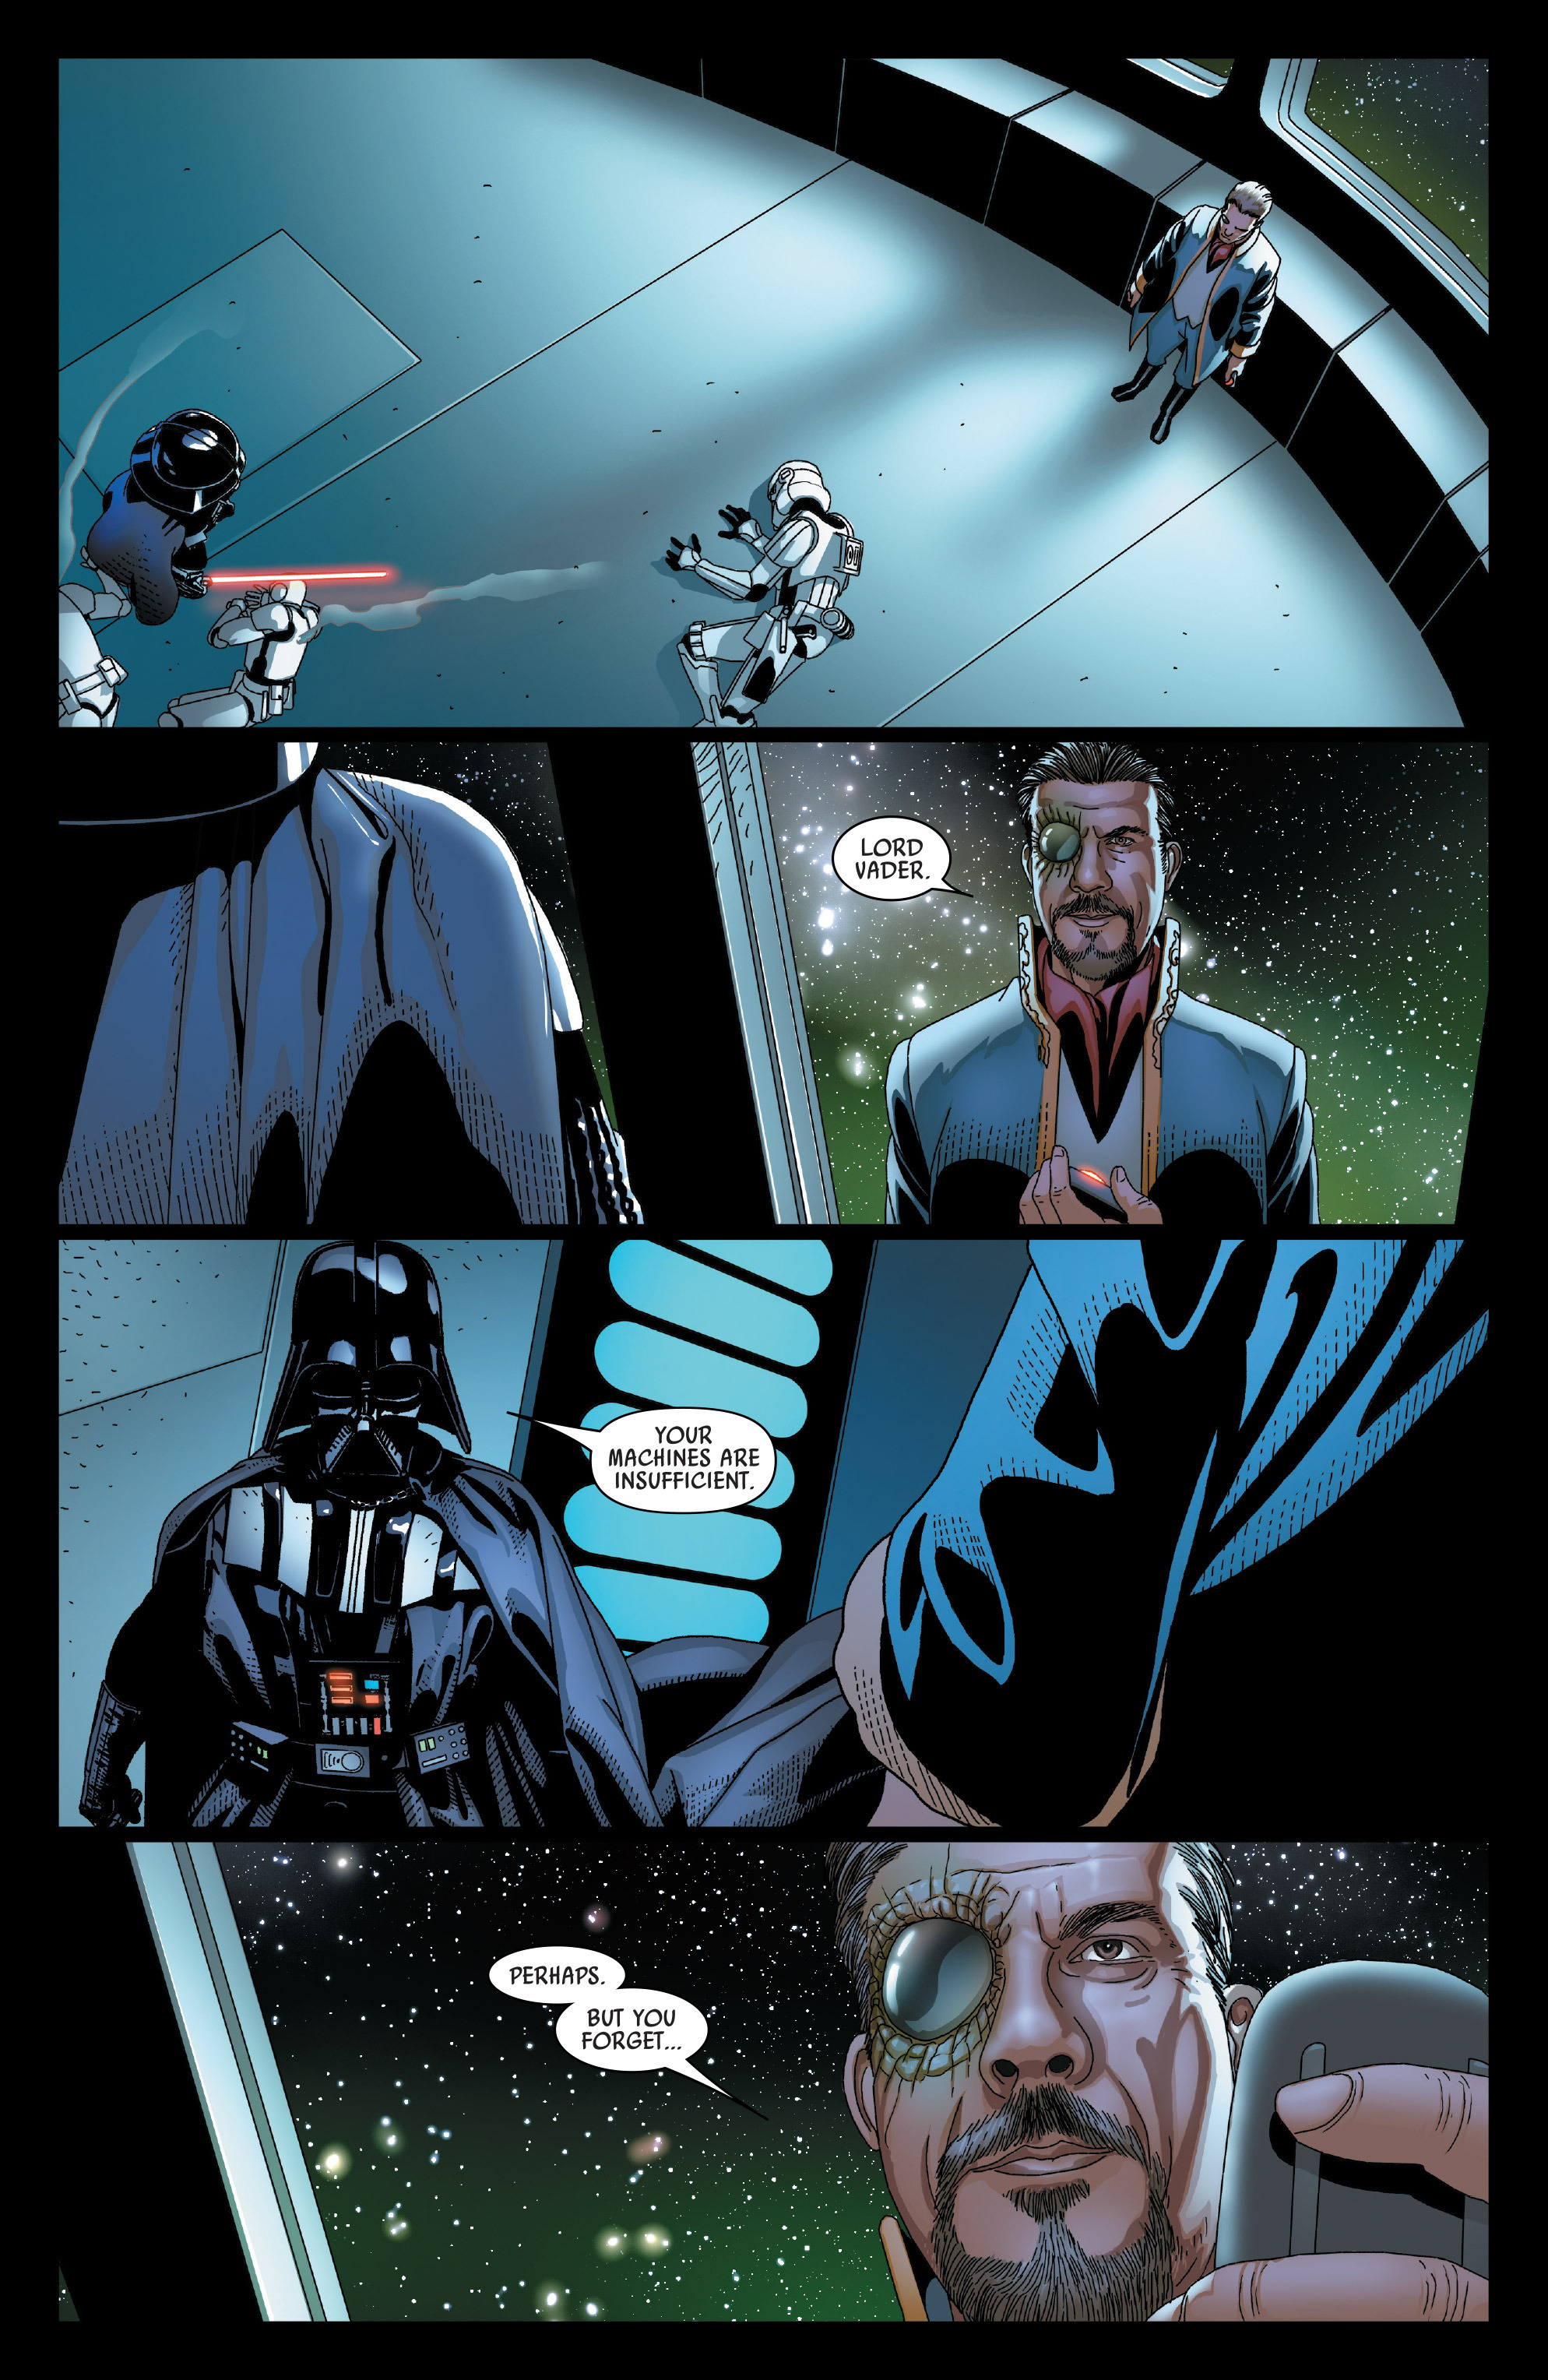 Read online Darth Vader comic -  Issue #23 - 19